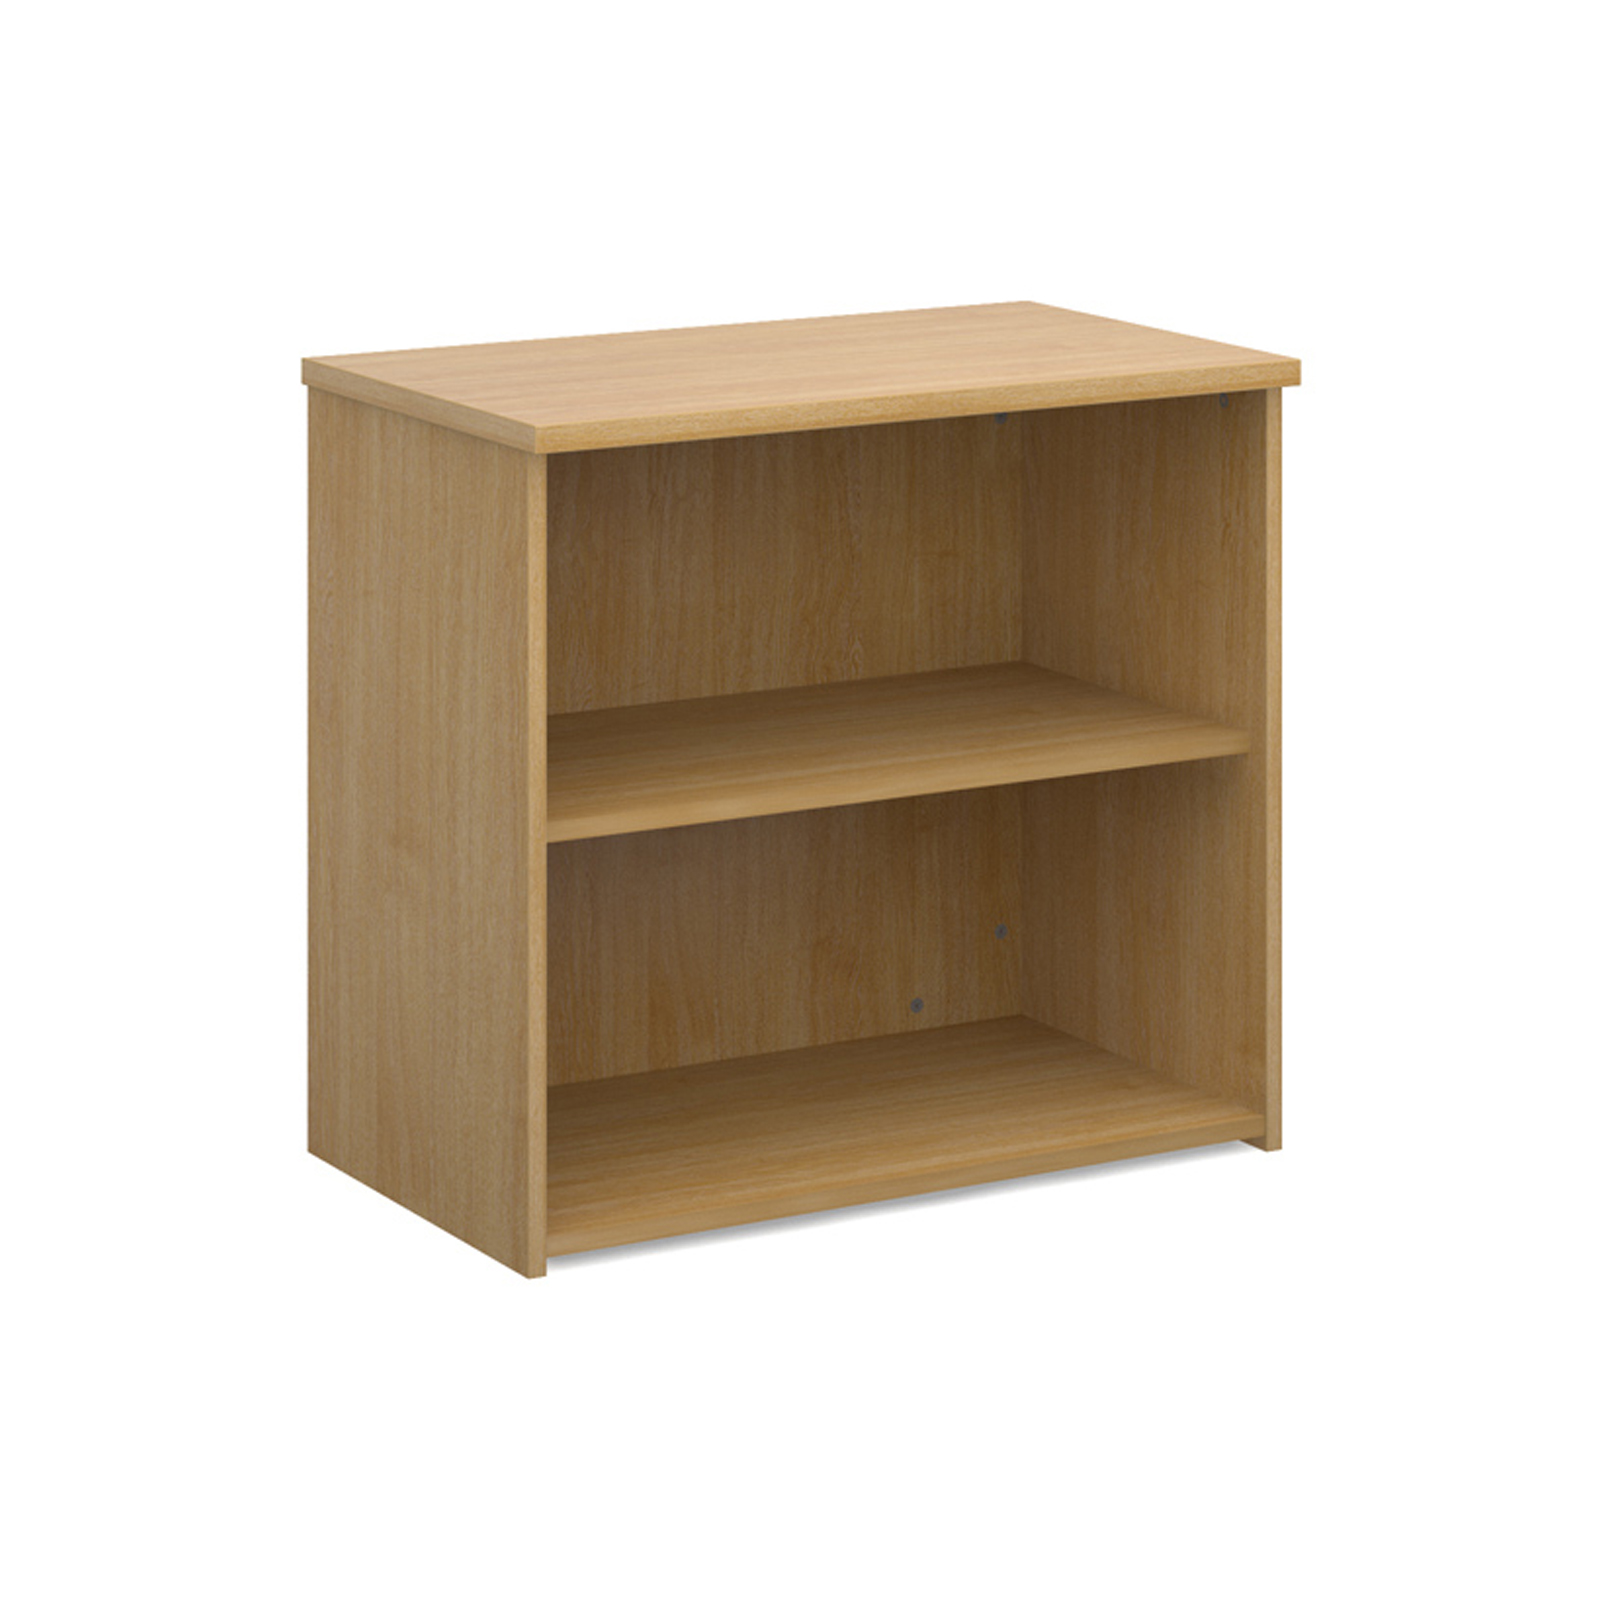 Up To 1200mm High Universal bookcase 740mm high with 1 shelf - oak